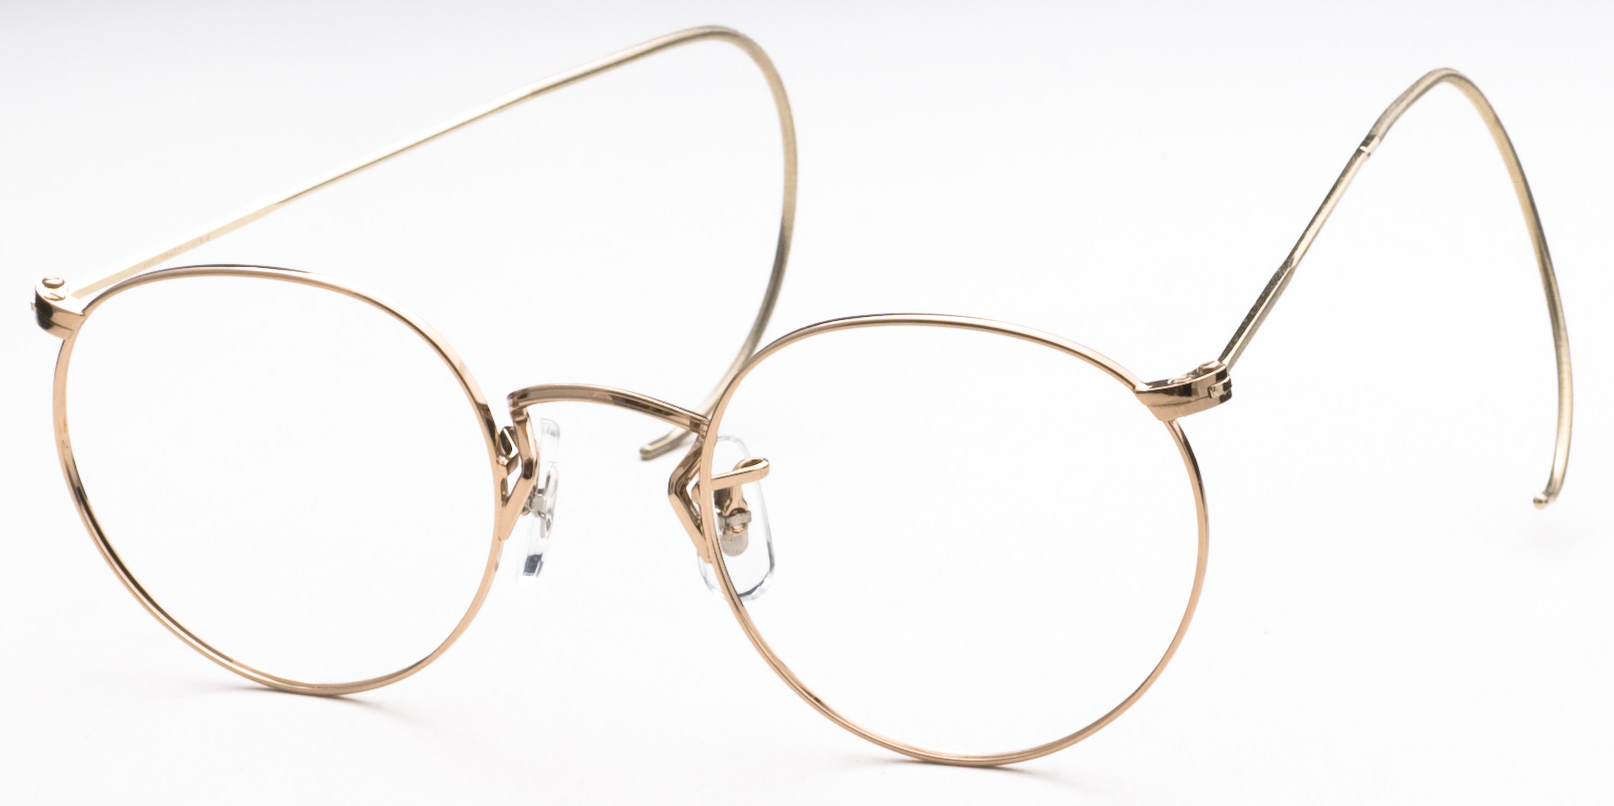 Art-Craft 100A eyeglasses are designed for men and women feature cable temples. The Art-Craft 100A eyeglasses model is made of metal and manufactured in U.S.A..